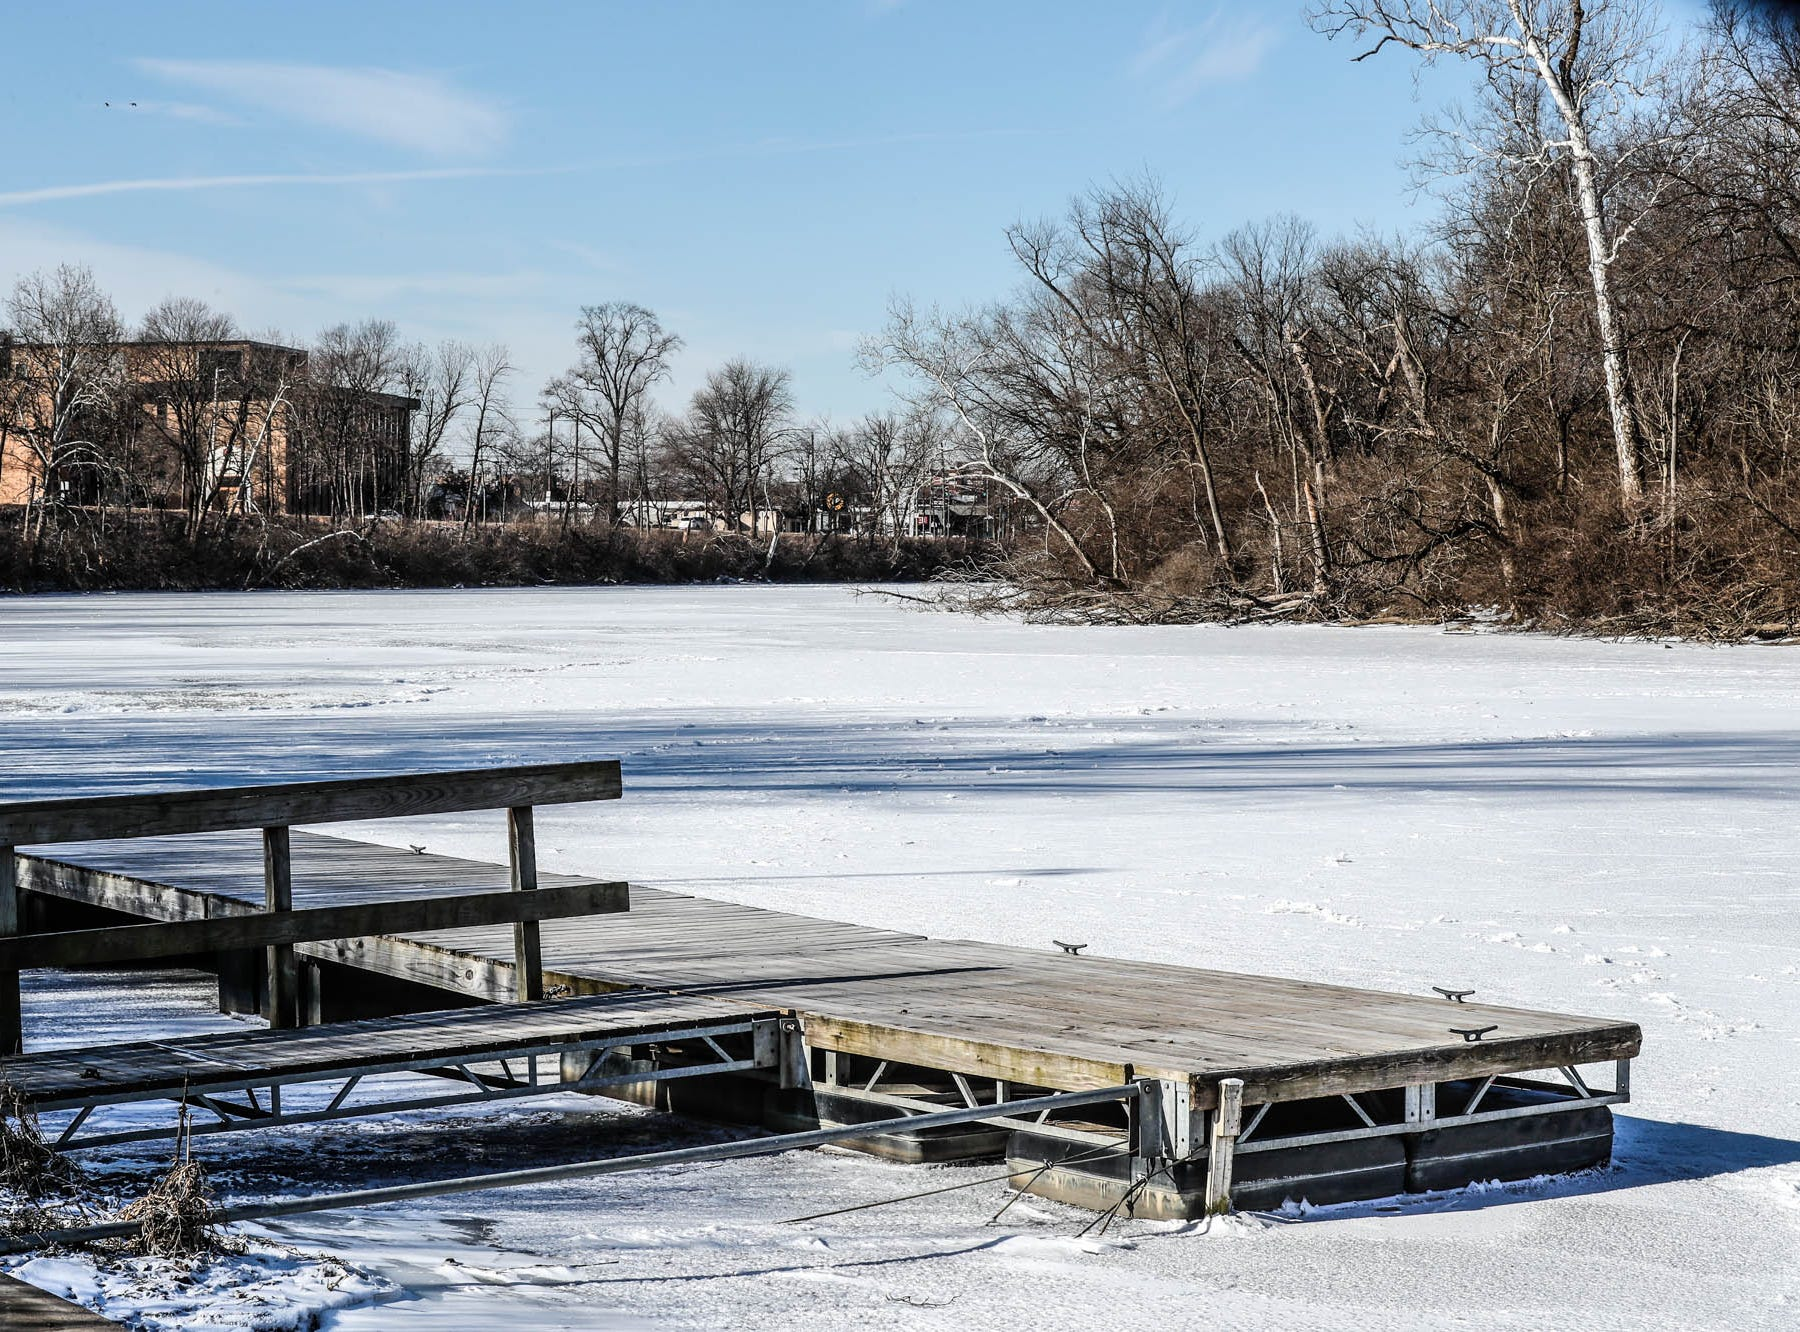 White River freezes over at the Broad Ripple Park boat ramp in near sub-zero temperatures on Thursday, Jan. 31, 2019.